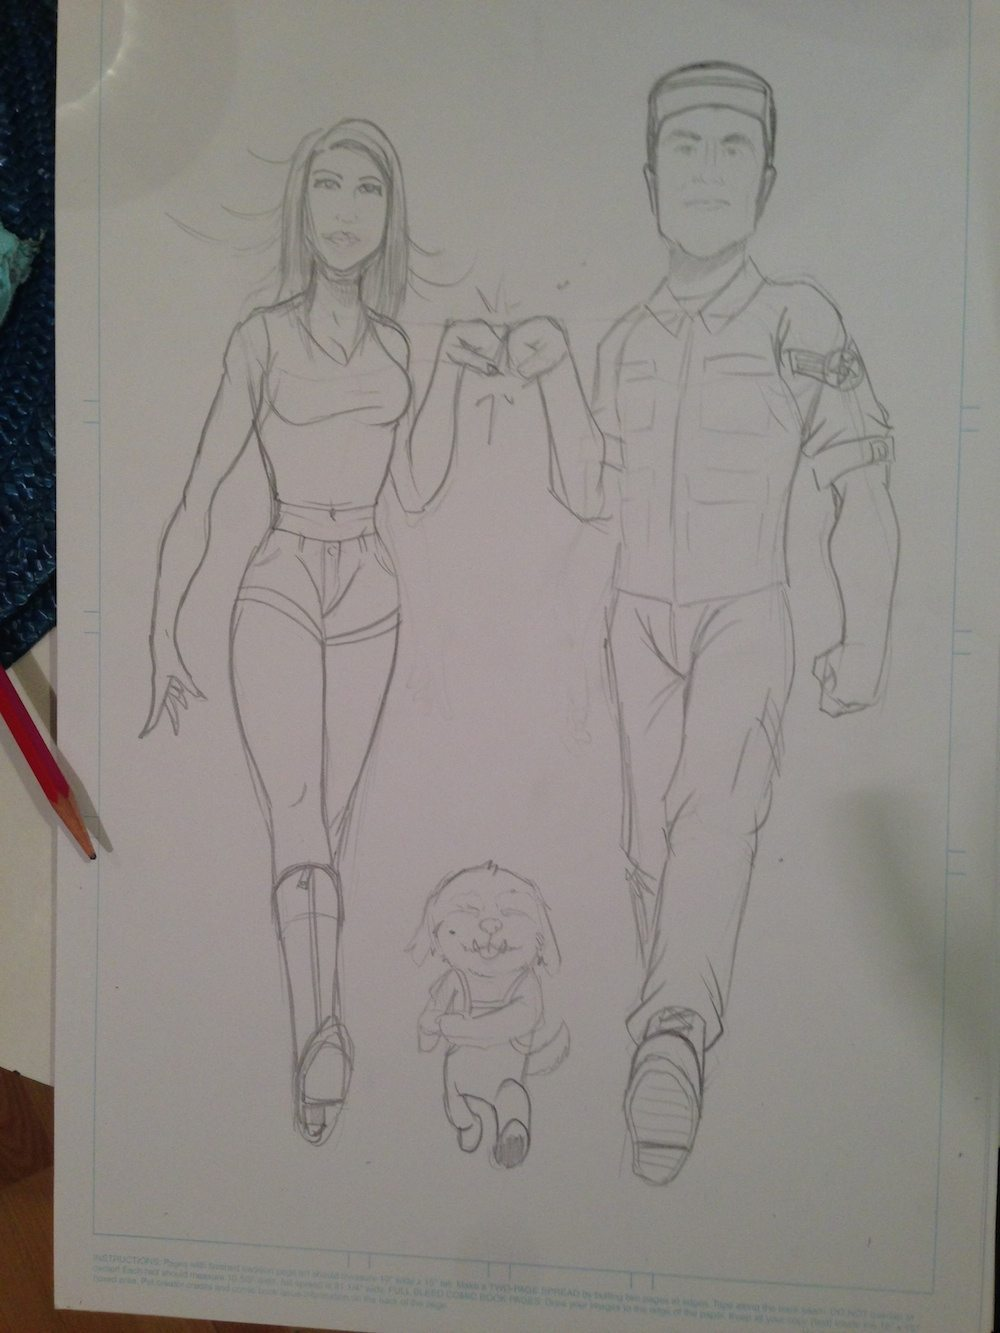 WIP Sketch of Fist Bumping Couple by Clay Graham